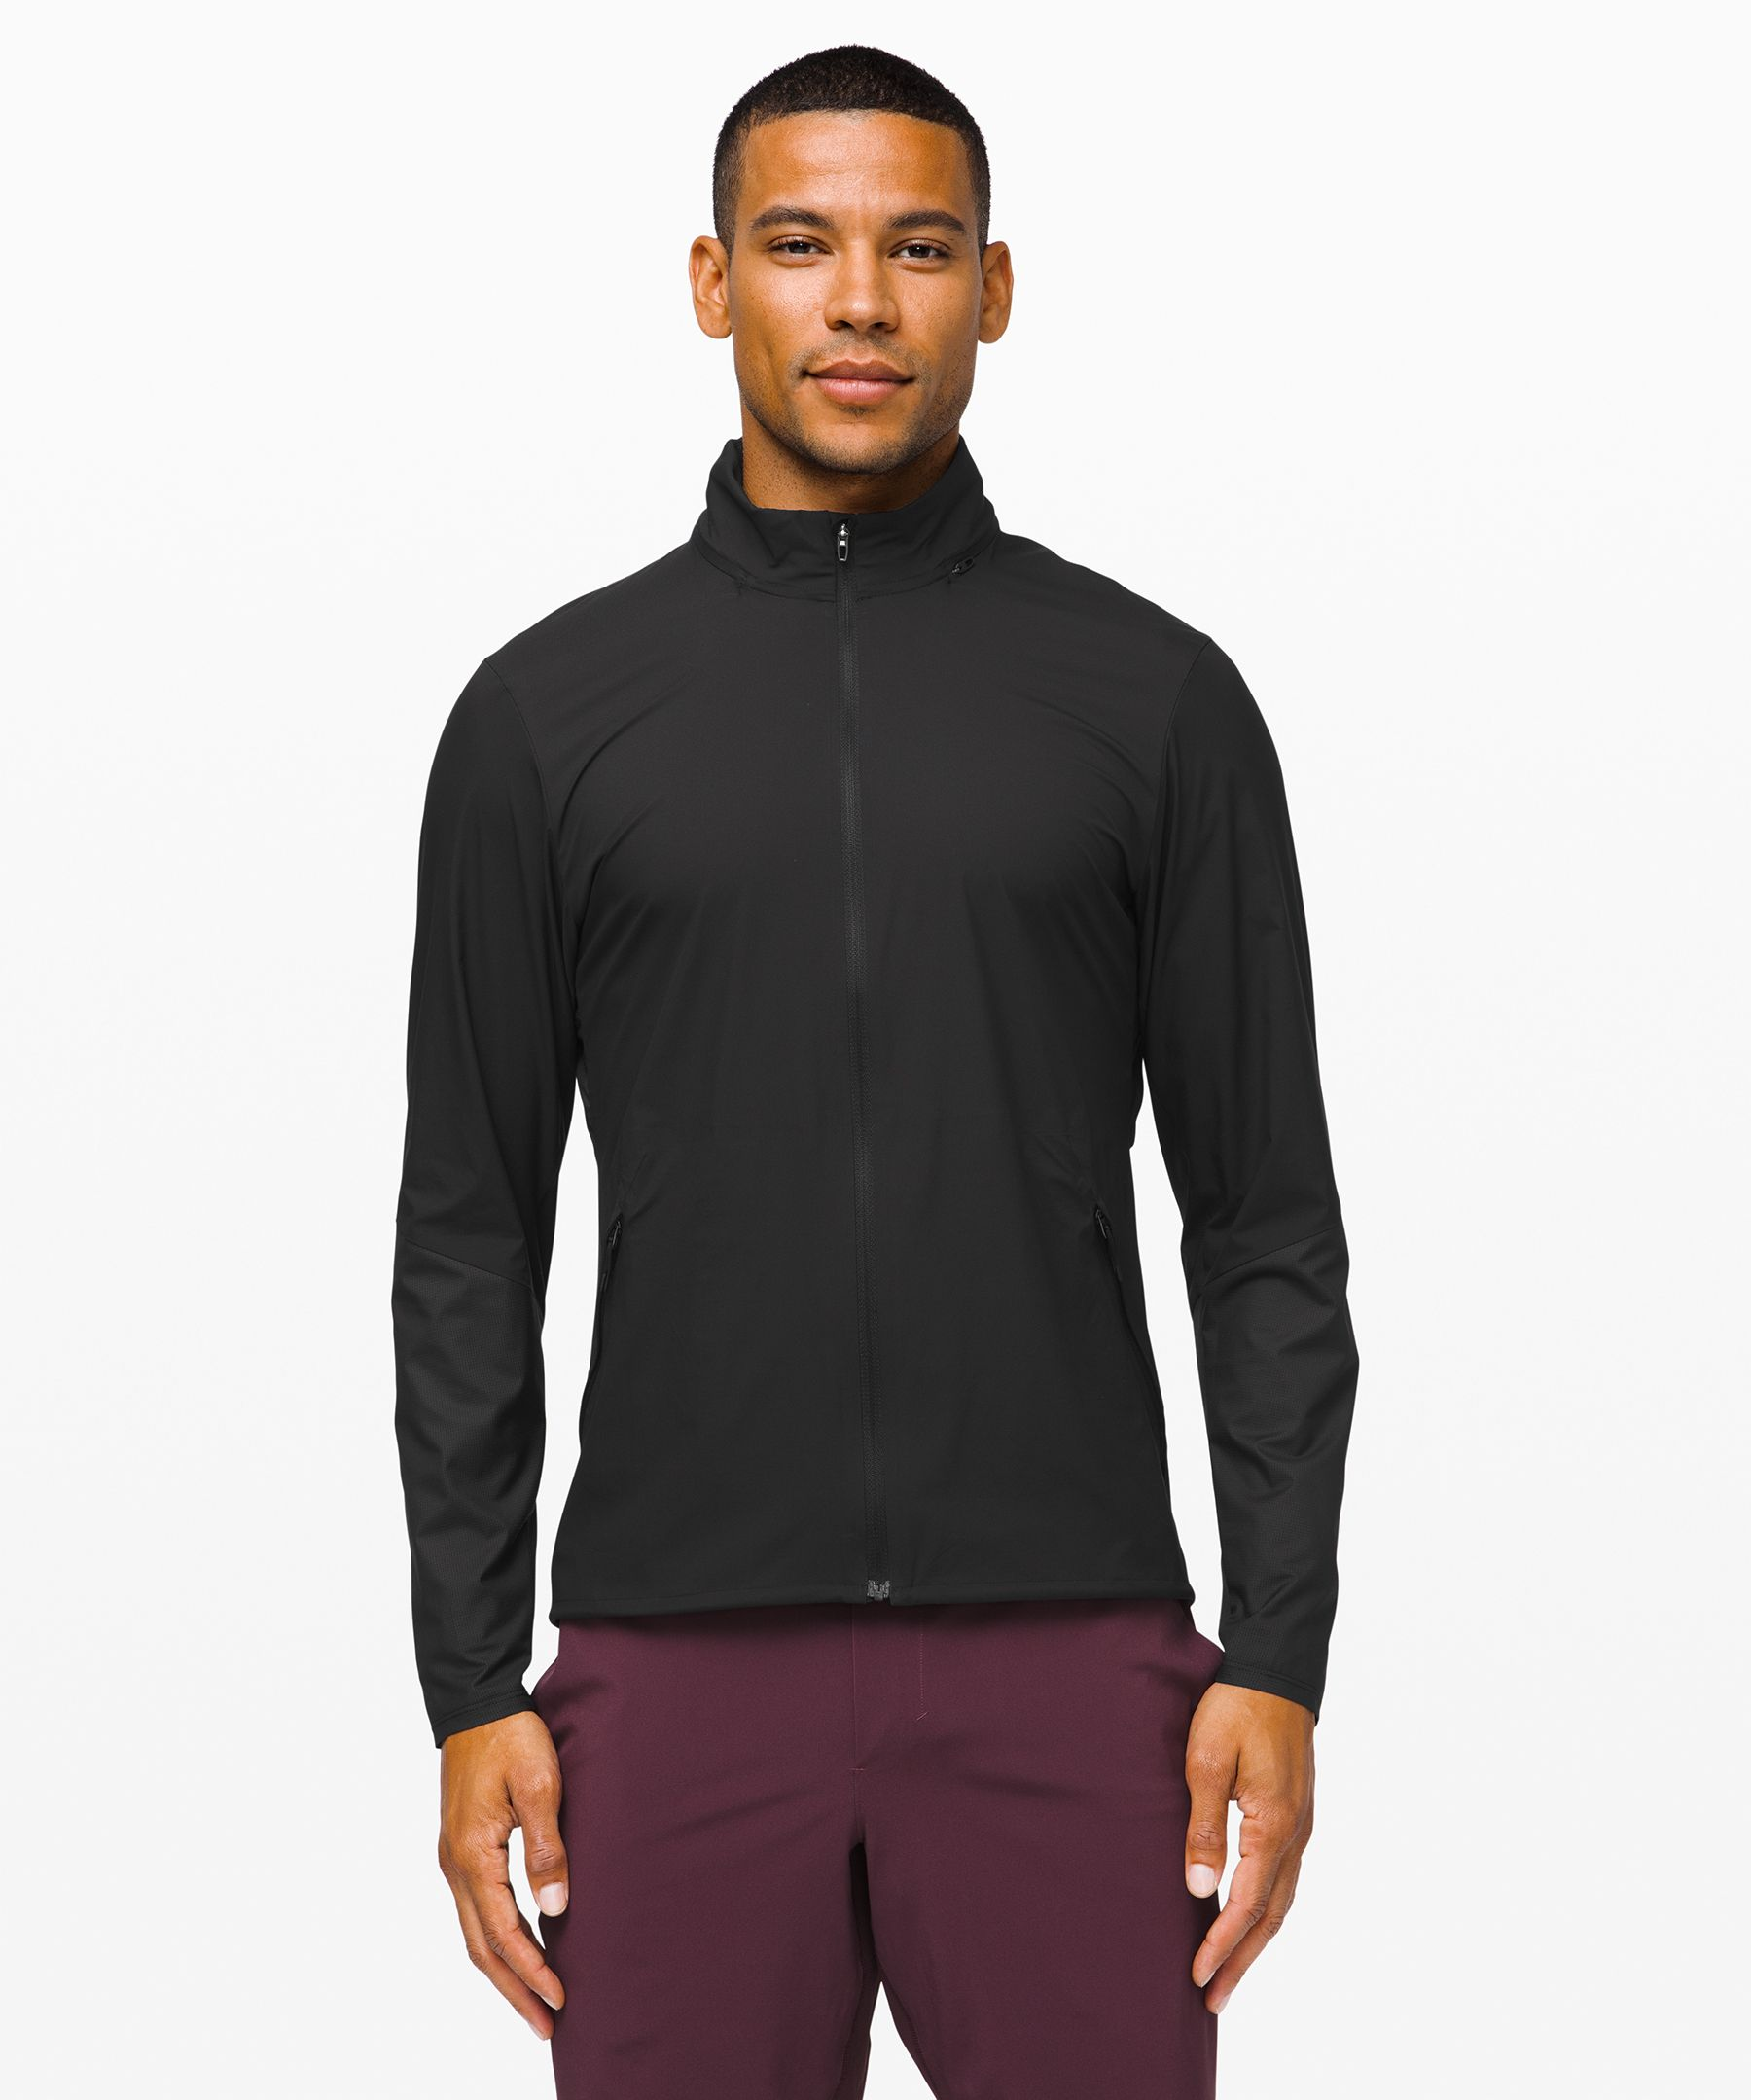 To make it a fair race, you may want to give your goals a head start. Lightweight, water-repellent, and loaded with functional details.